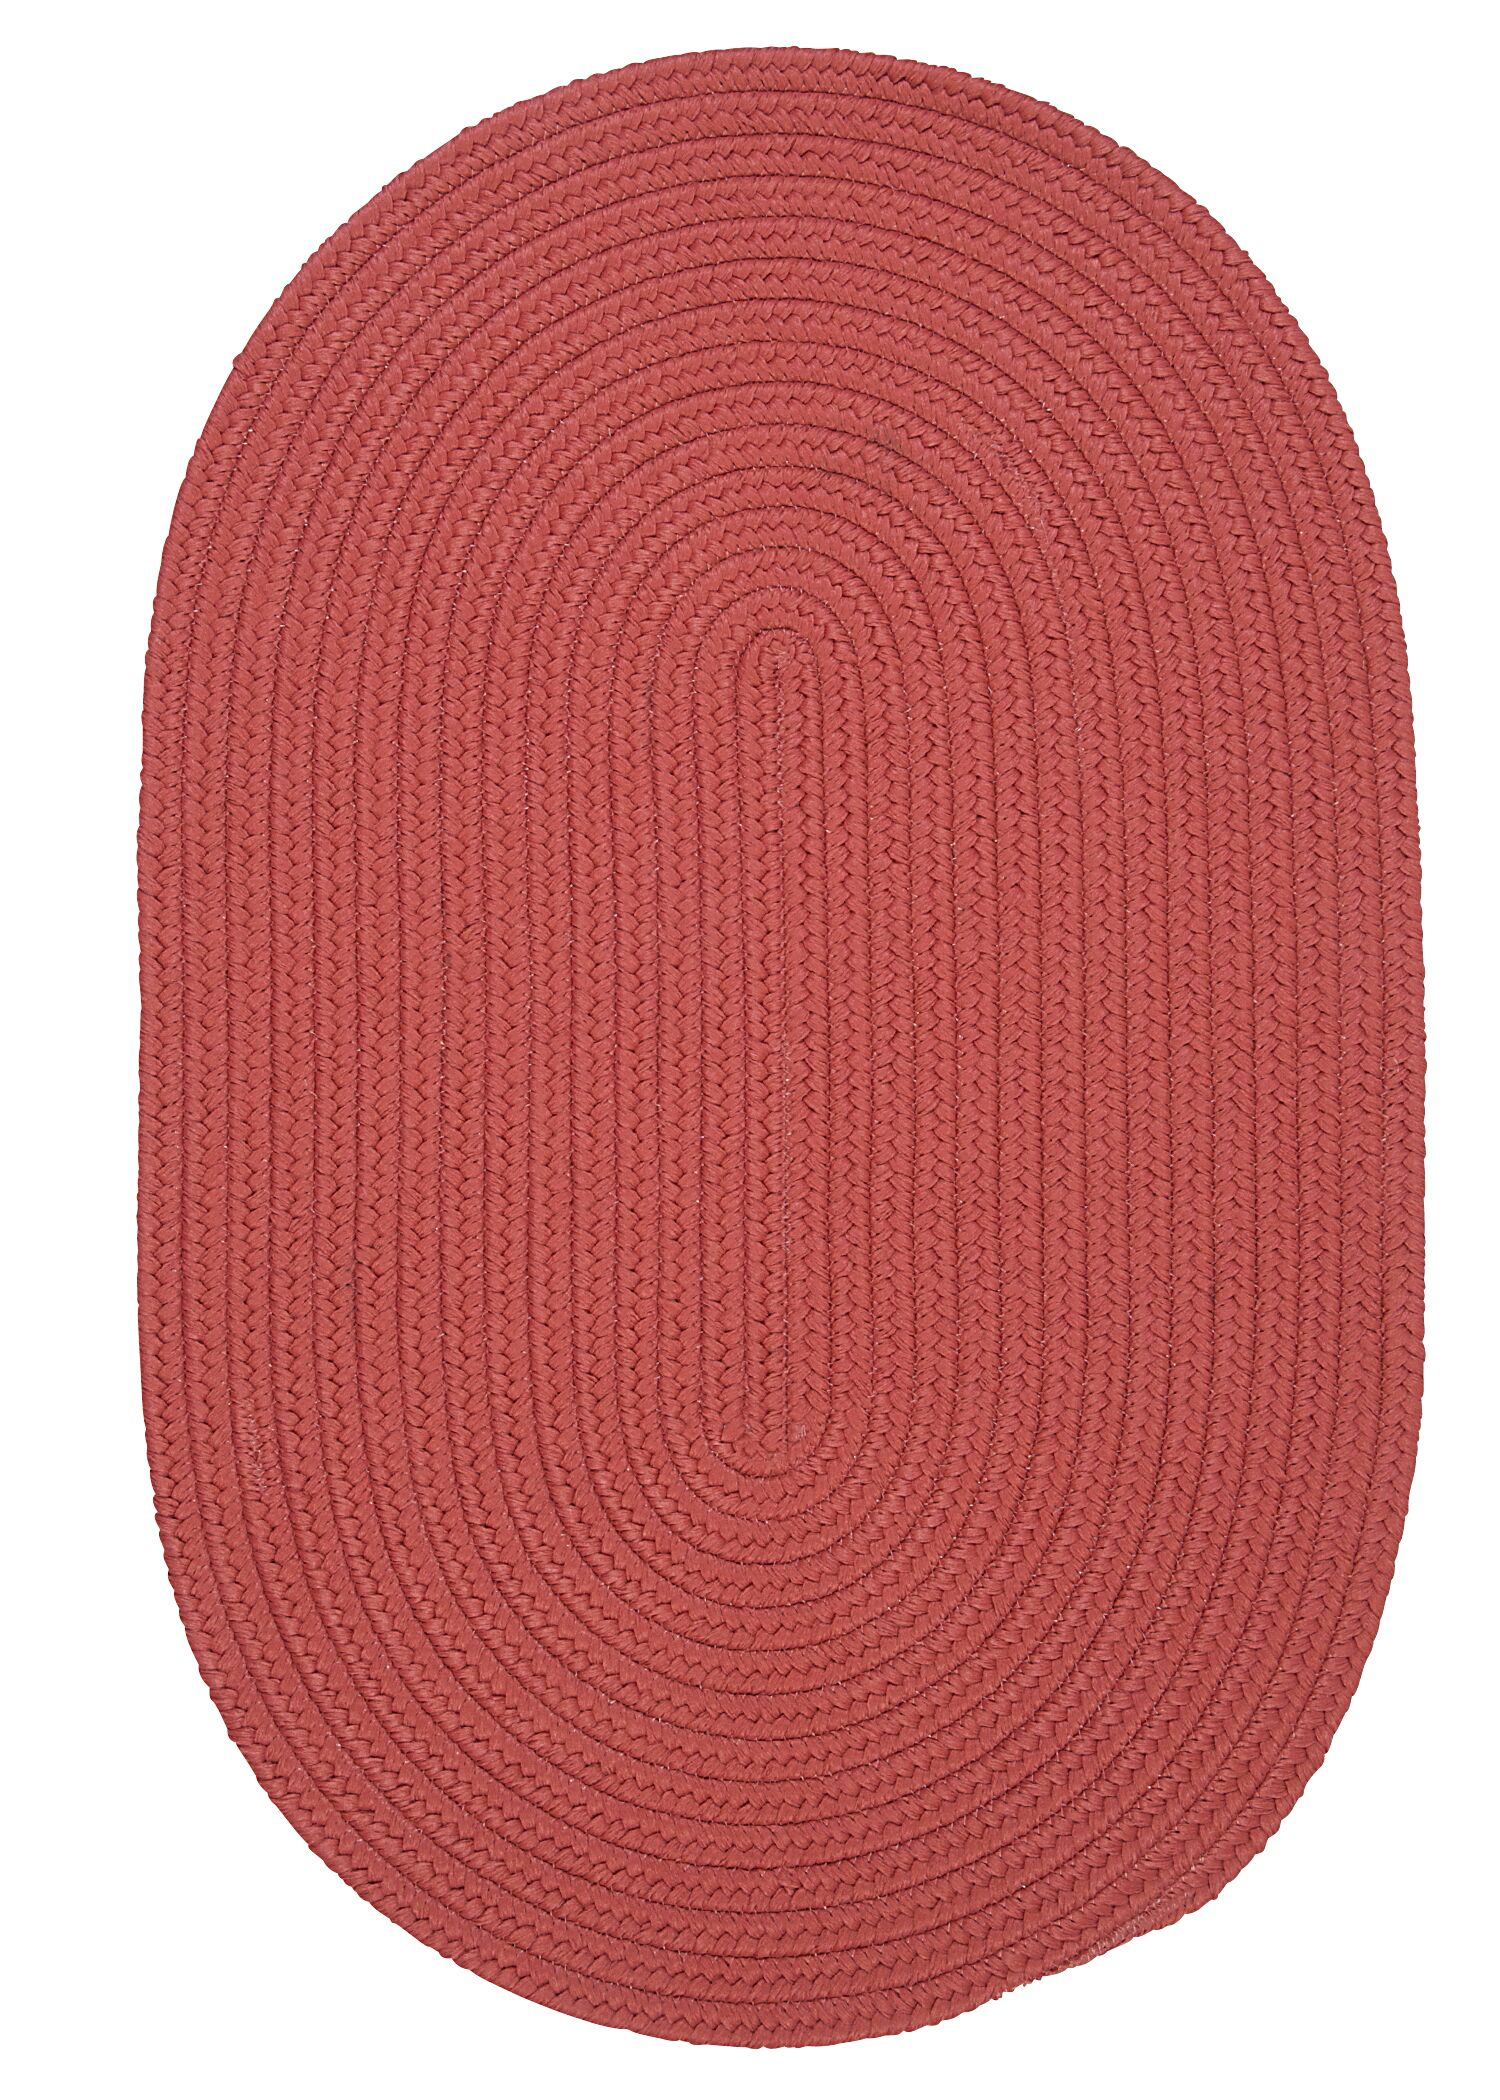 Mcintyre Terracotta Indoor/Outdoor Area Rug Rug Size: Oval 5' x 8'